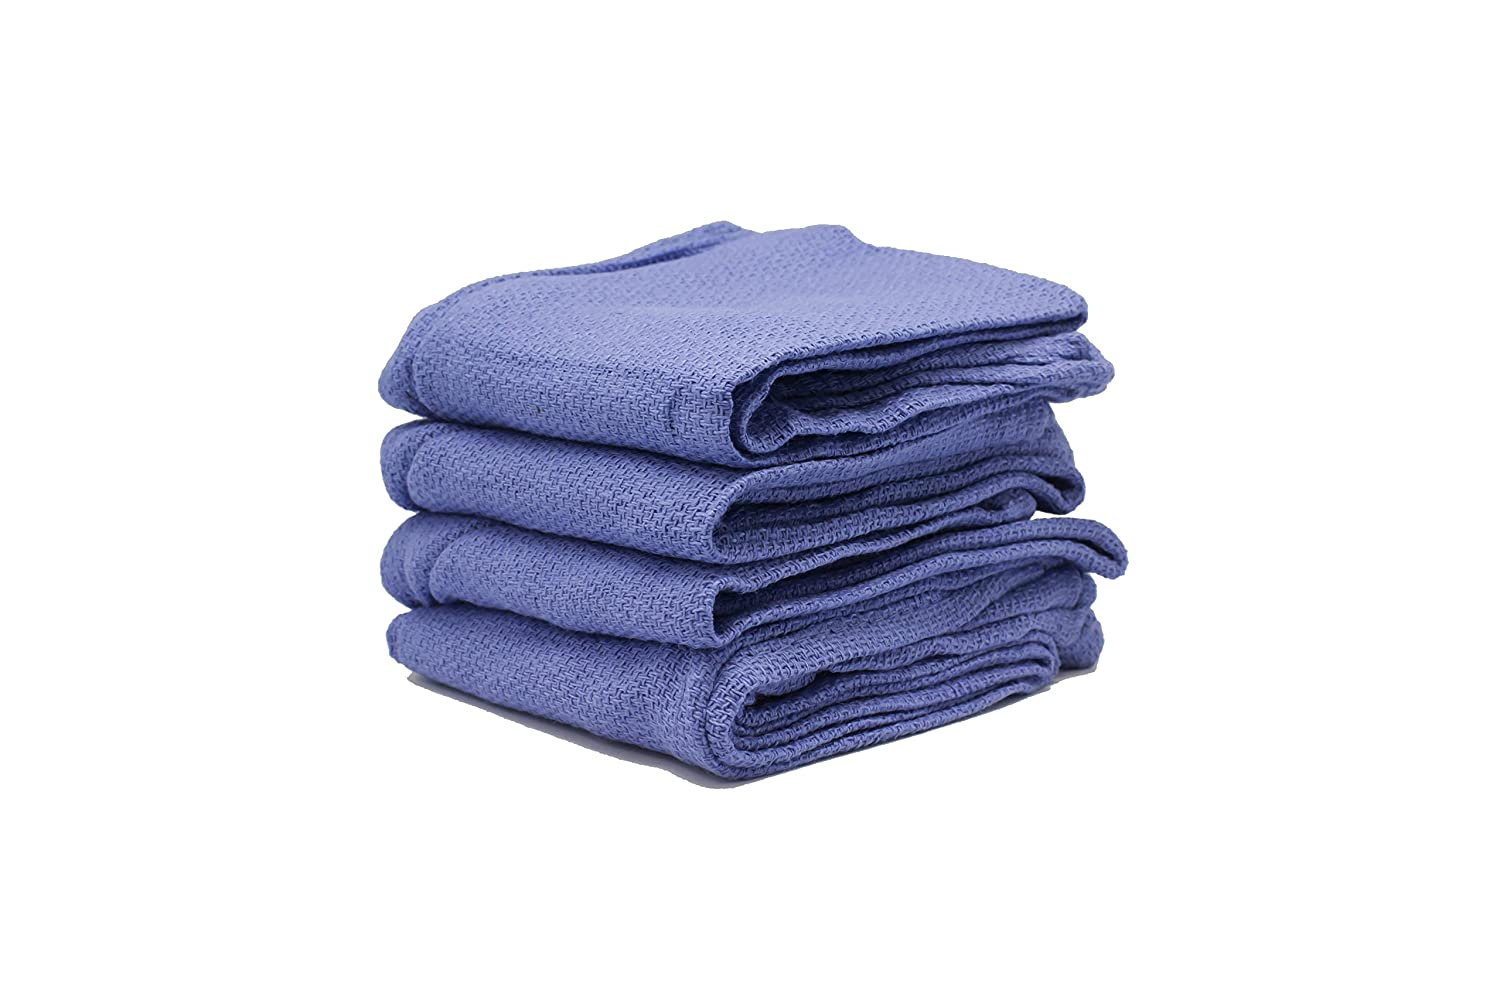 Blue Non-Sterile Pack of 100 Dukal CT-1730B OR Towel